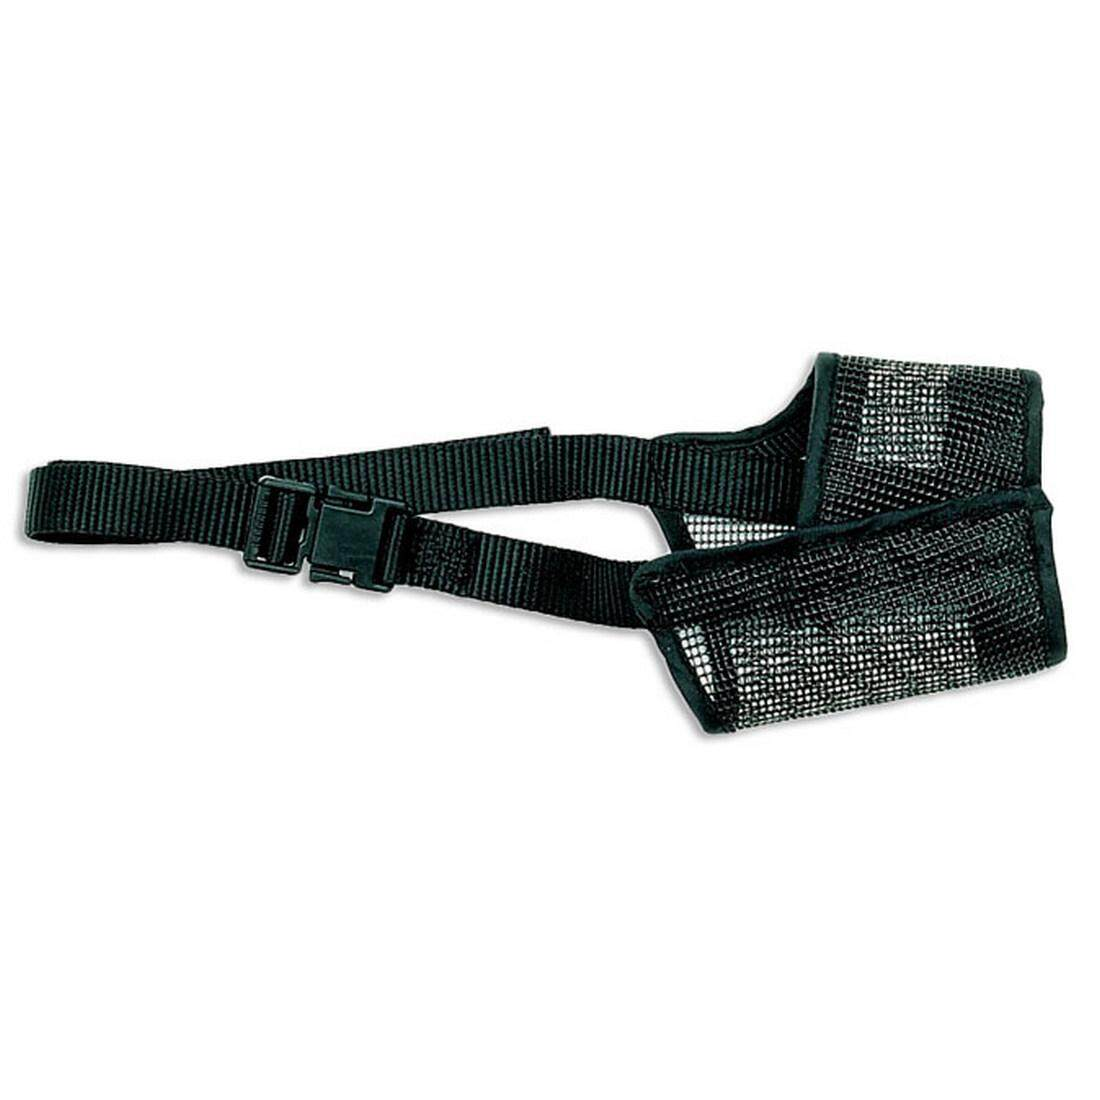 [Coastal] Best Fit Adjustable Mesh Dog Muzzle Size 6